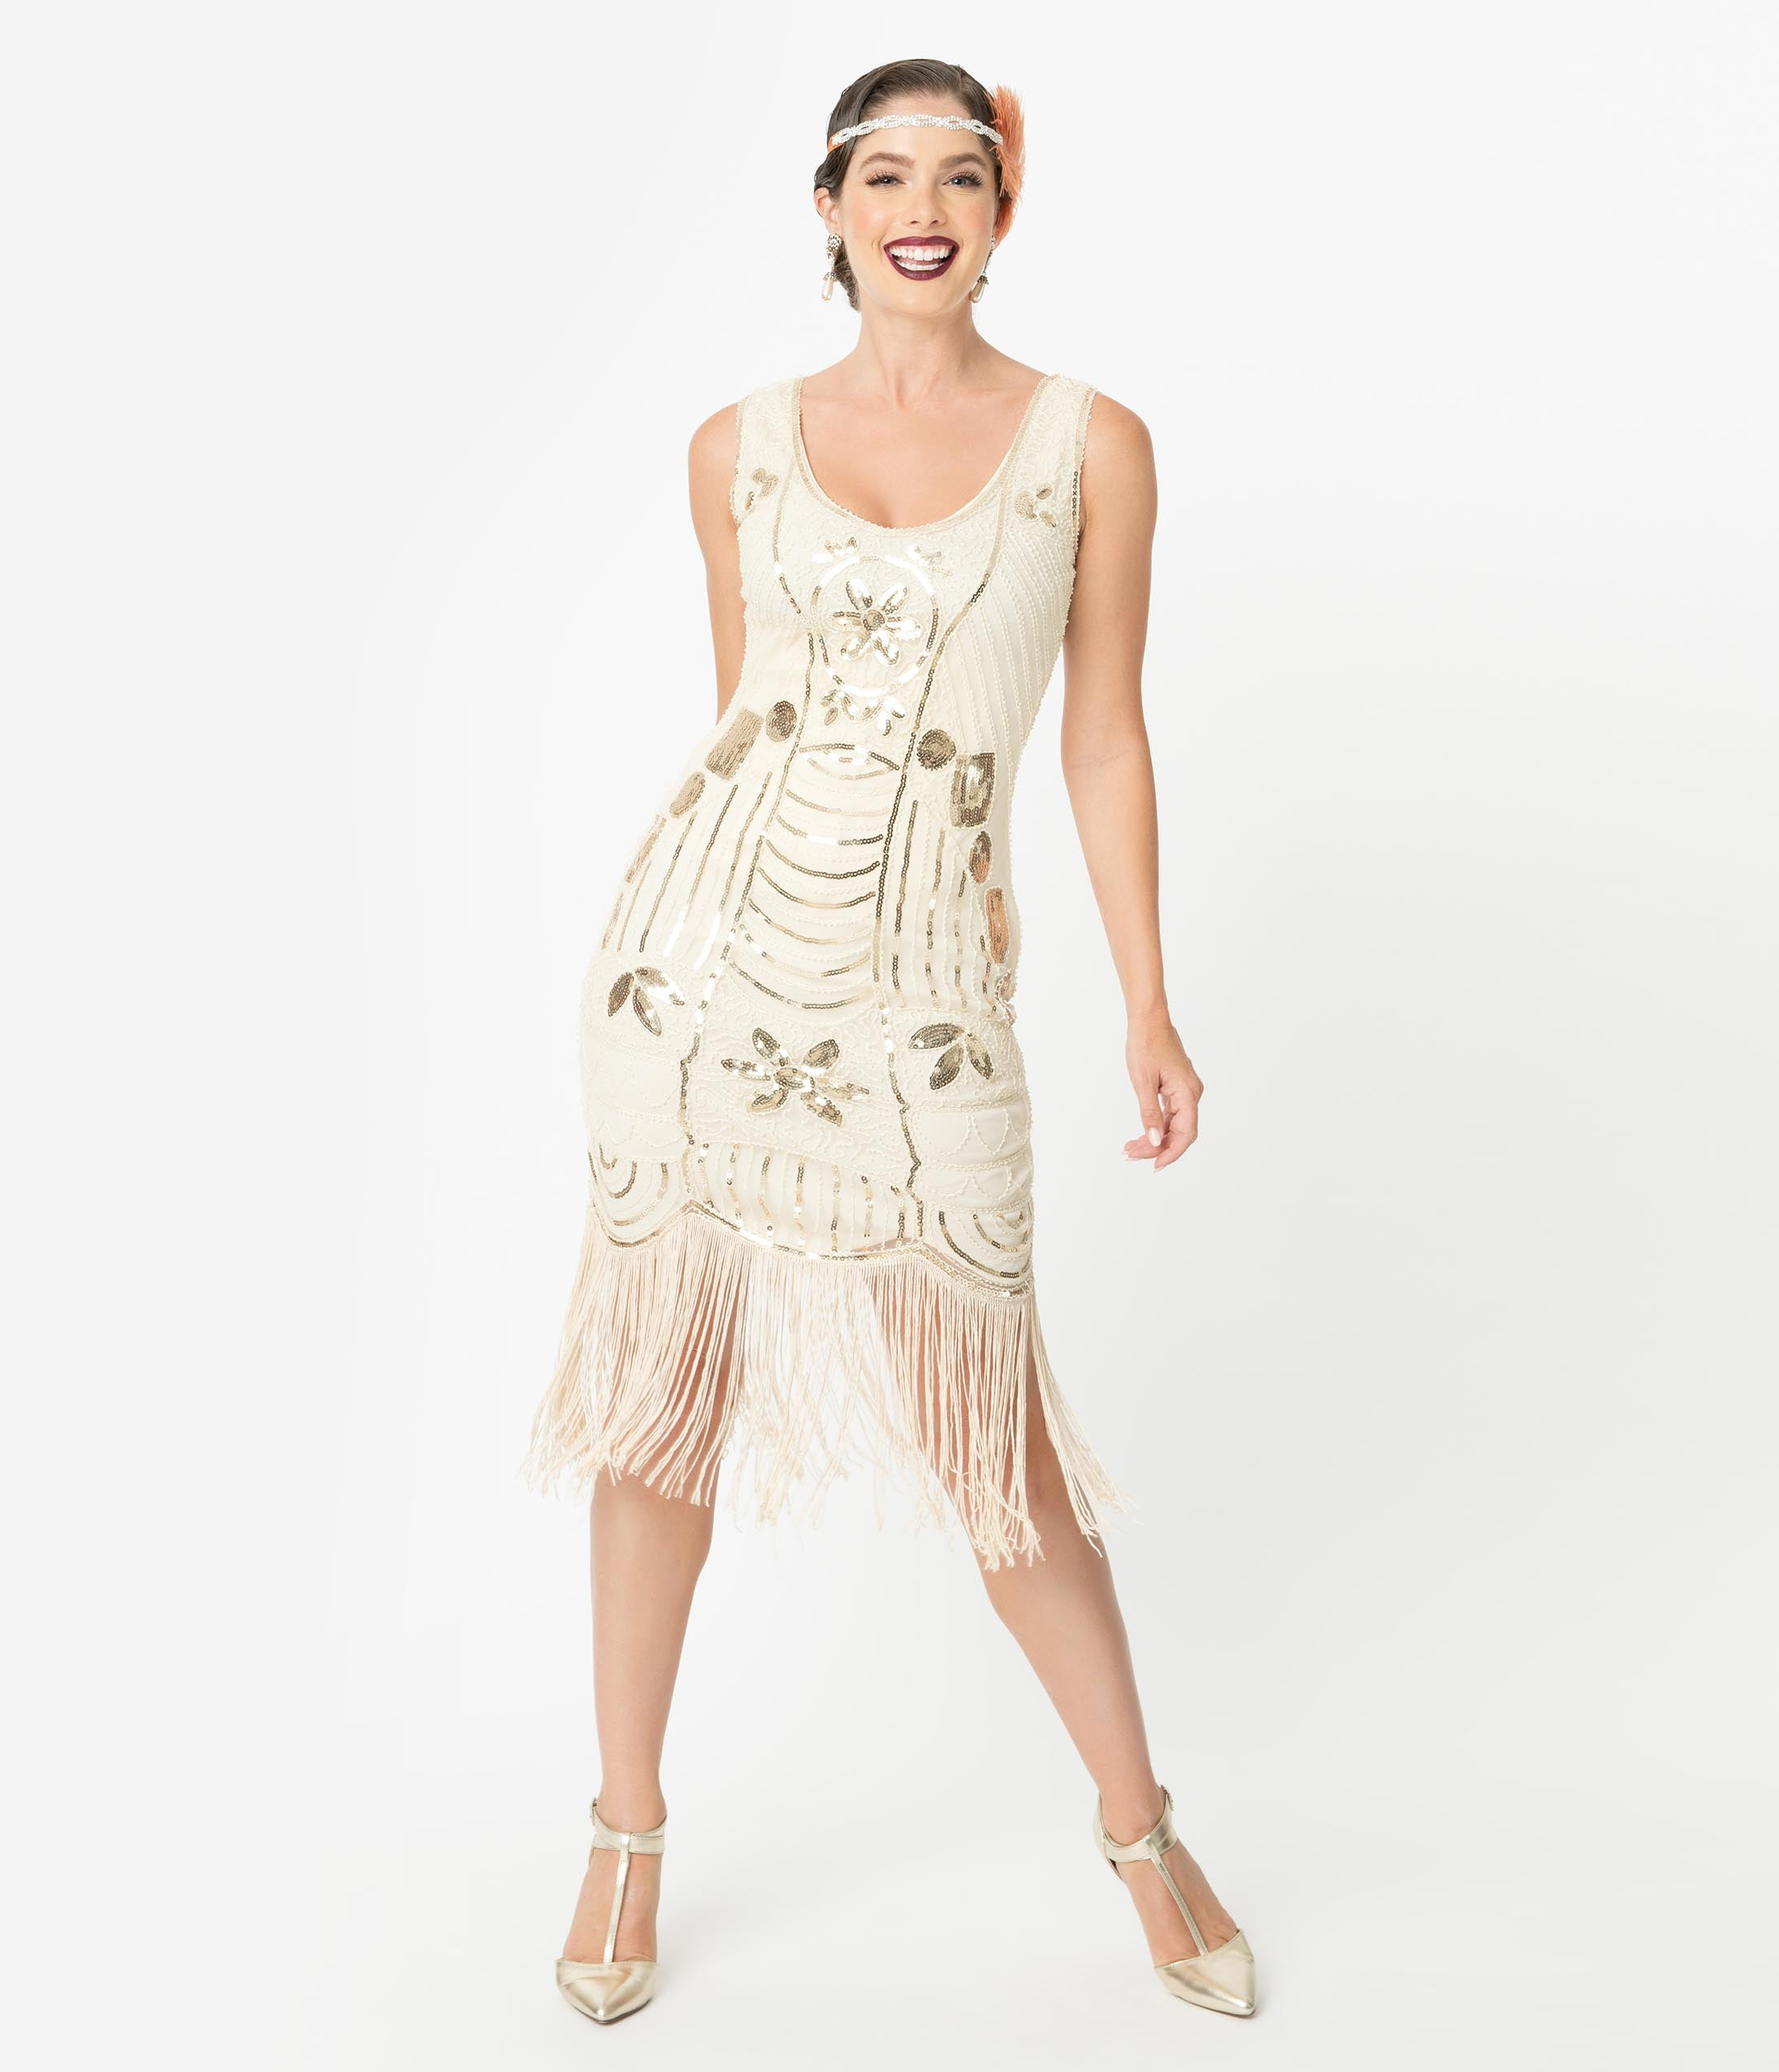 1920s Plus Size Flapper Dresses, Gatsby Dresses, Flapper Costumes Unique Vintage Cream  Gold Sequin Fringe Cremieux Flapper Dress $98.00 AT vintagedancer.com